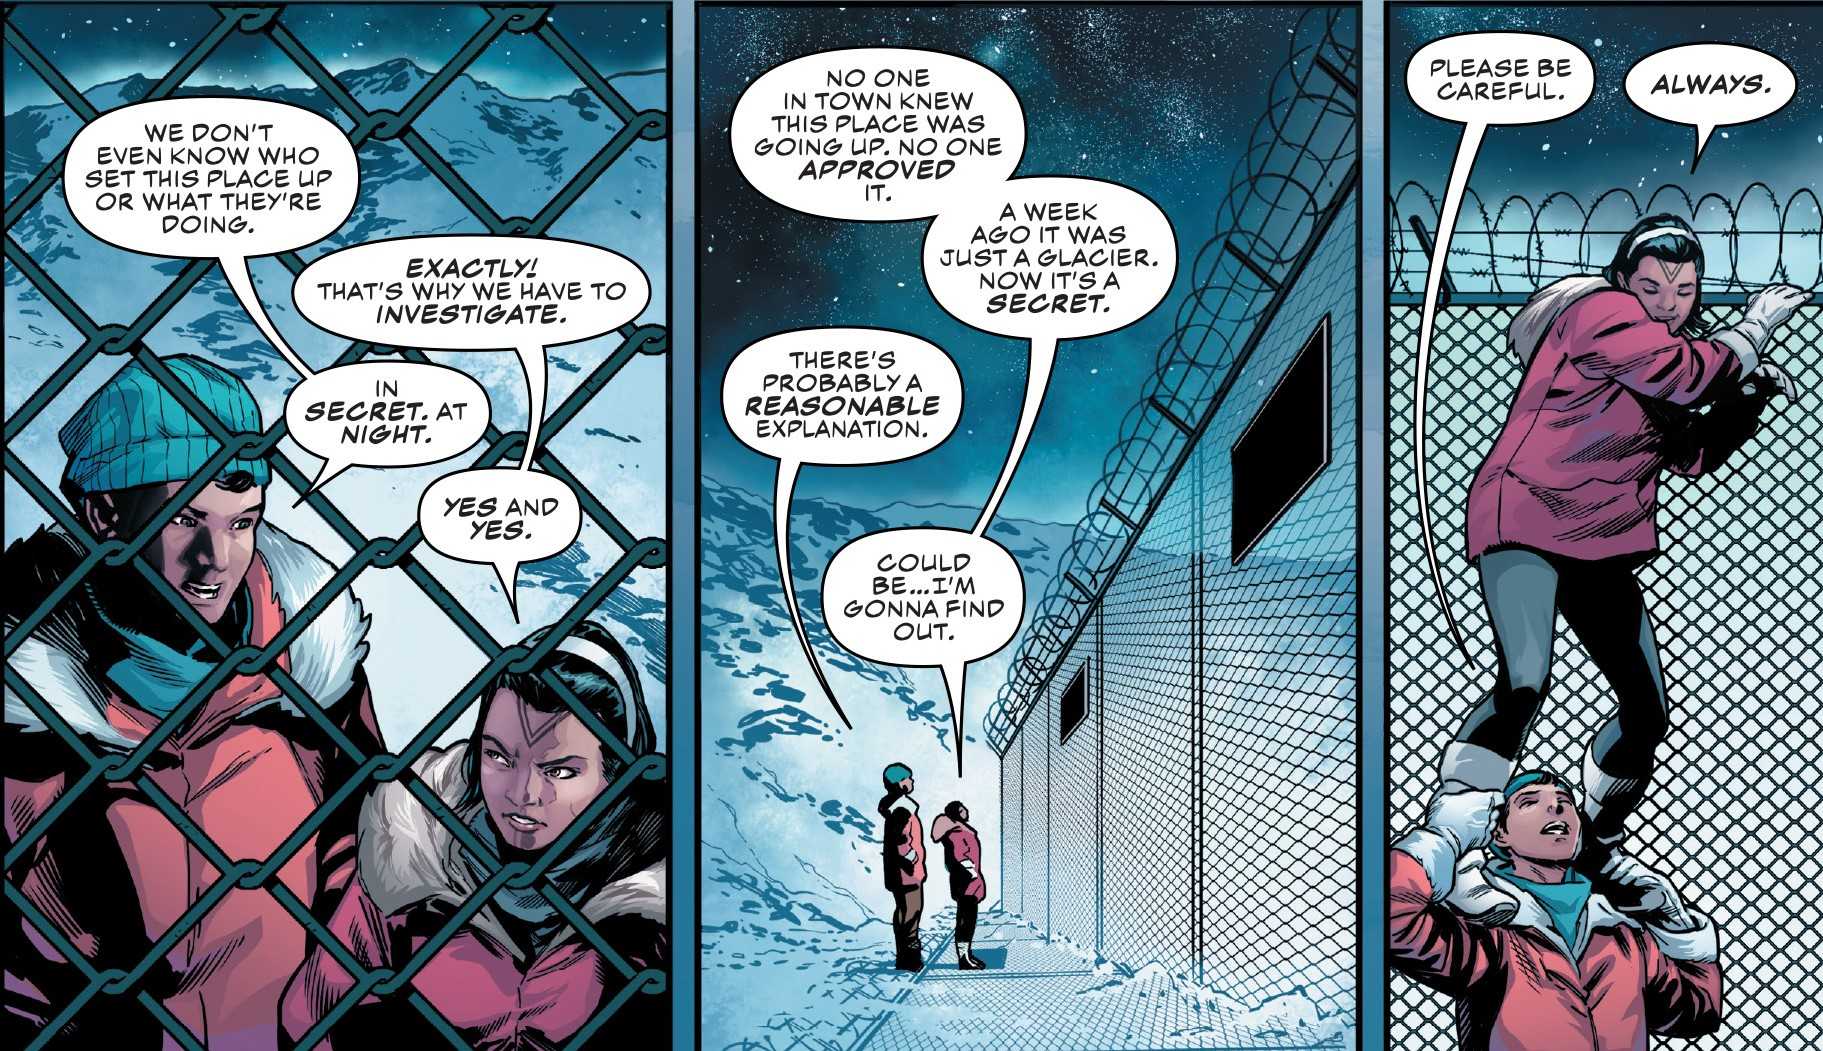 Detail from Marvel Comics Champions #19, introducing a new Inuit superhero, Amka Aliyak, a.k.a., Snowguard. Line art by Sean Izaakse. Colors by Marcio Menyz. Champions and all related content copyright © Marvel Comics.